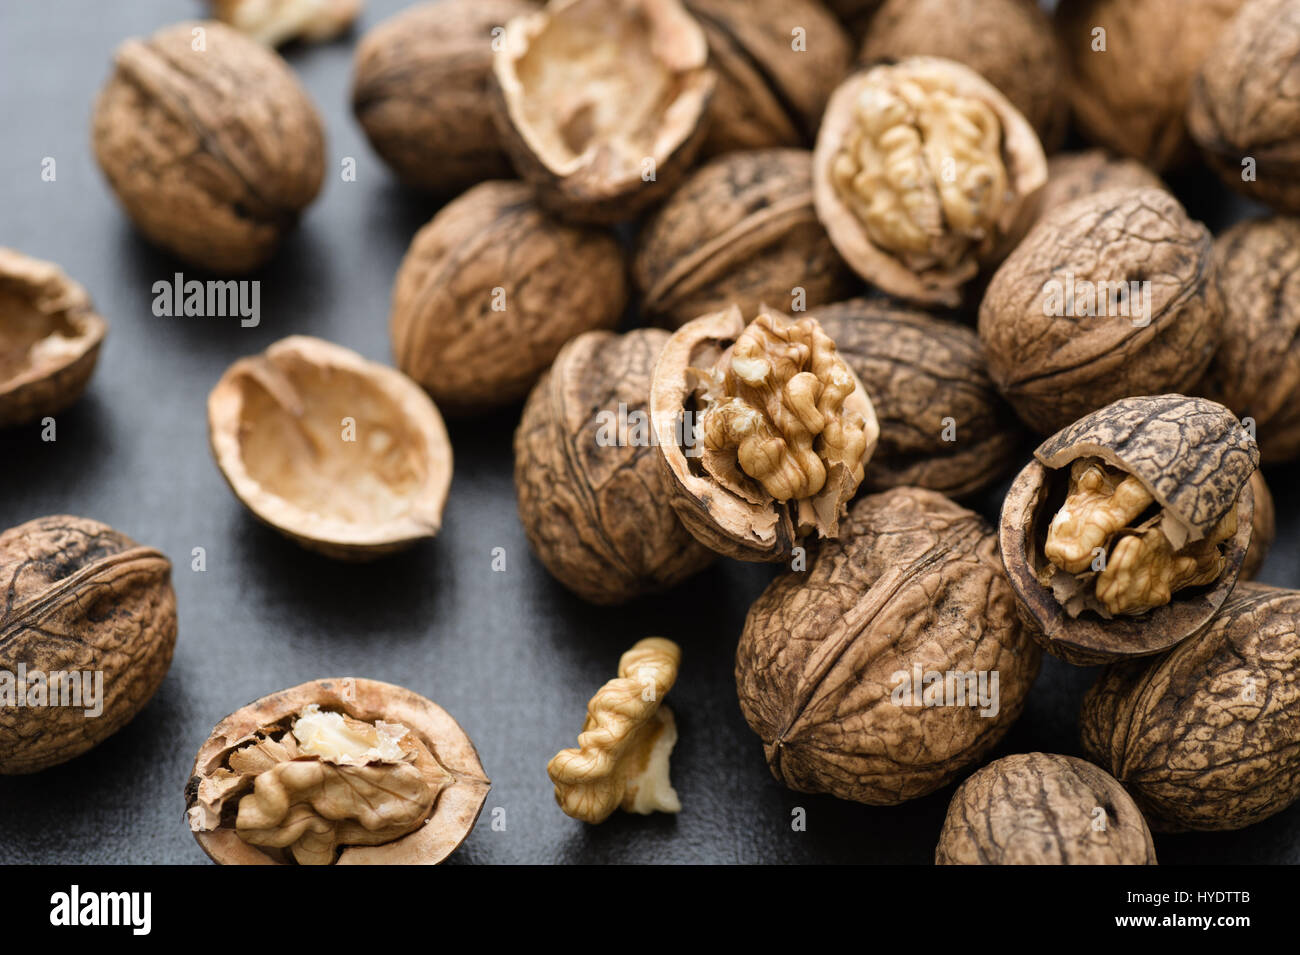 Fresh organic walnuts - Stock Image